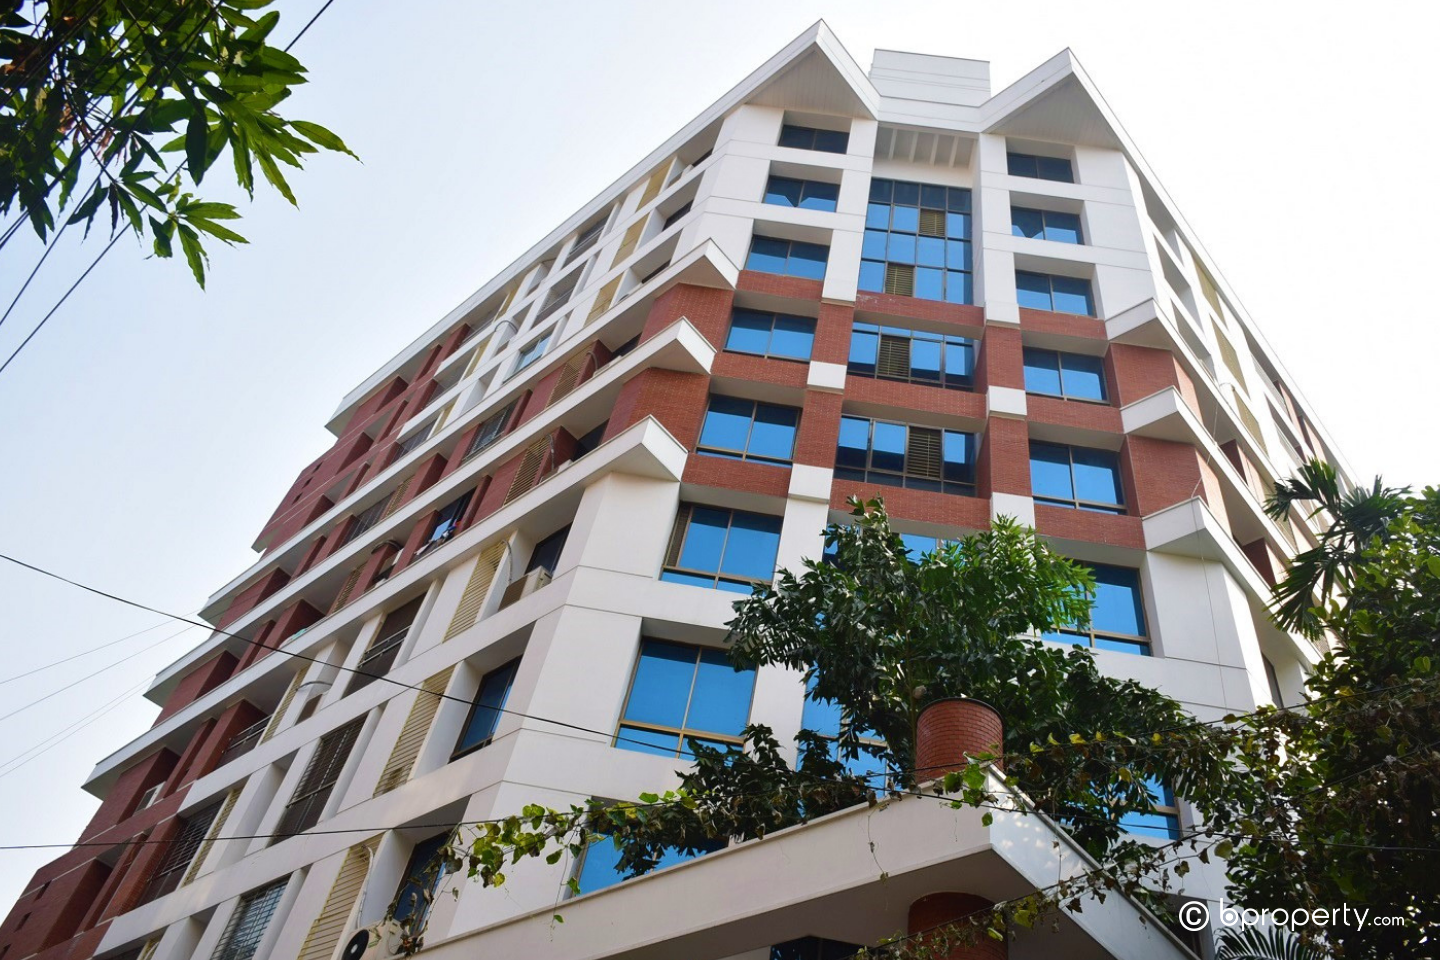 If you are planning for buying an apartment in Gulshan 1, check out this property